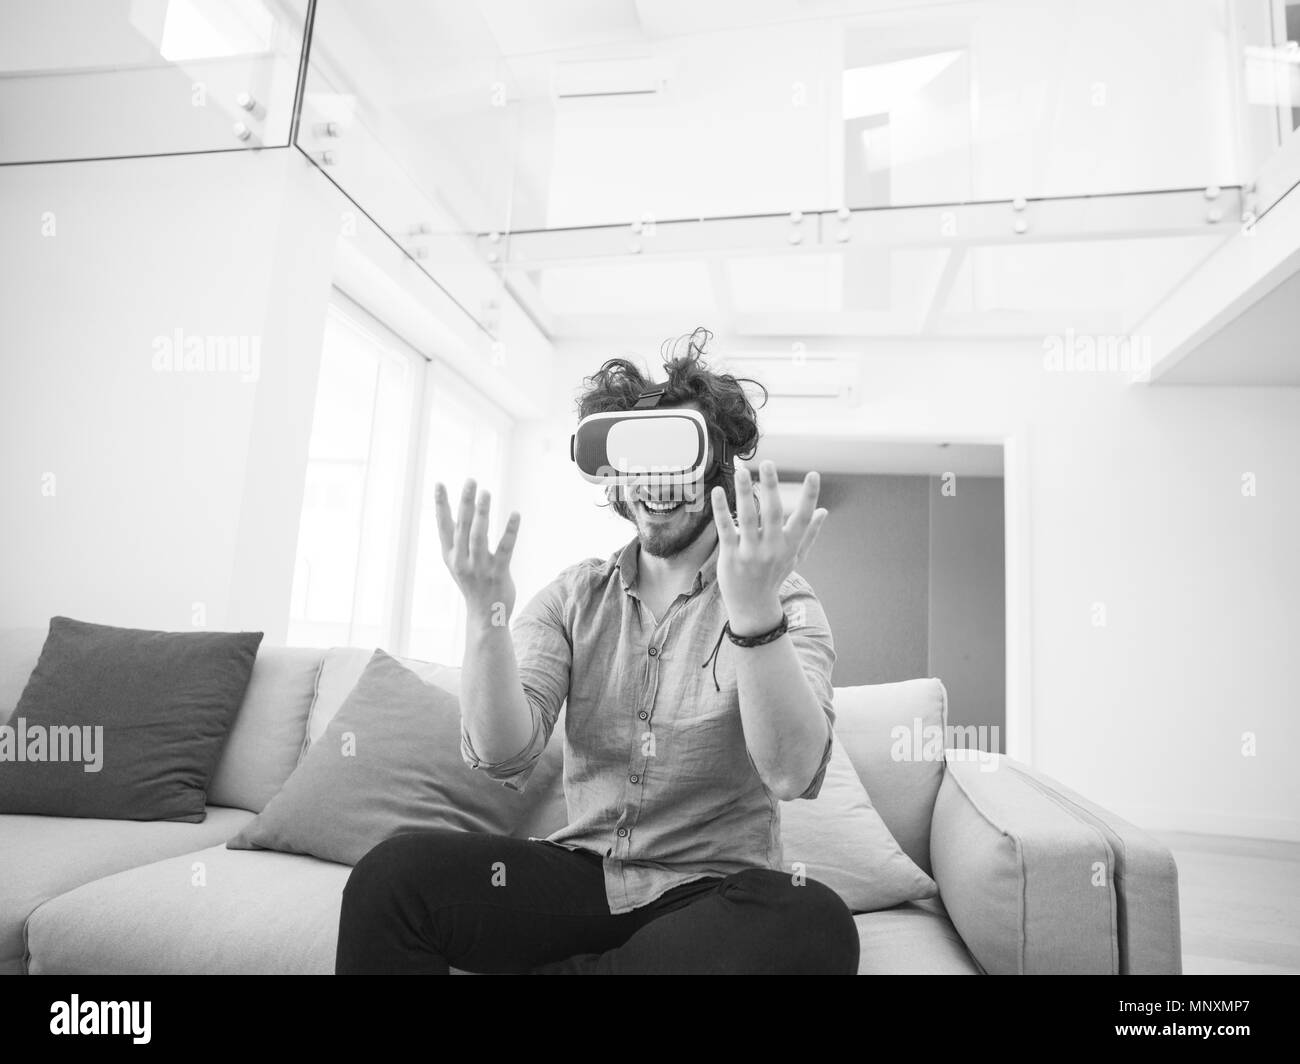 happy man getting experience using VR headset glasses of